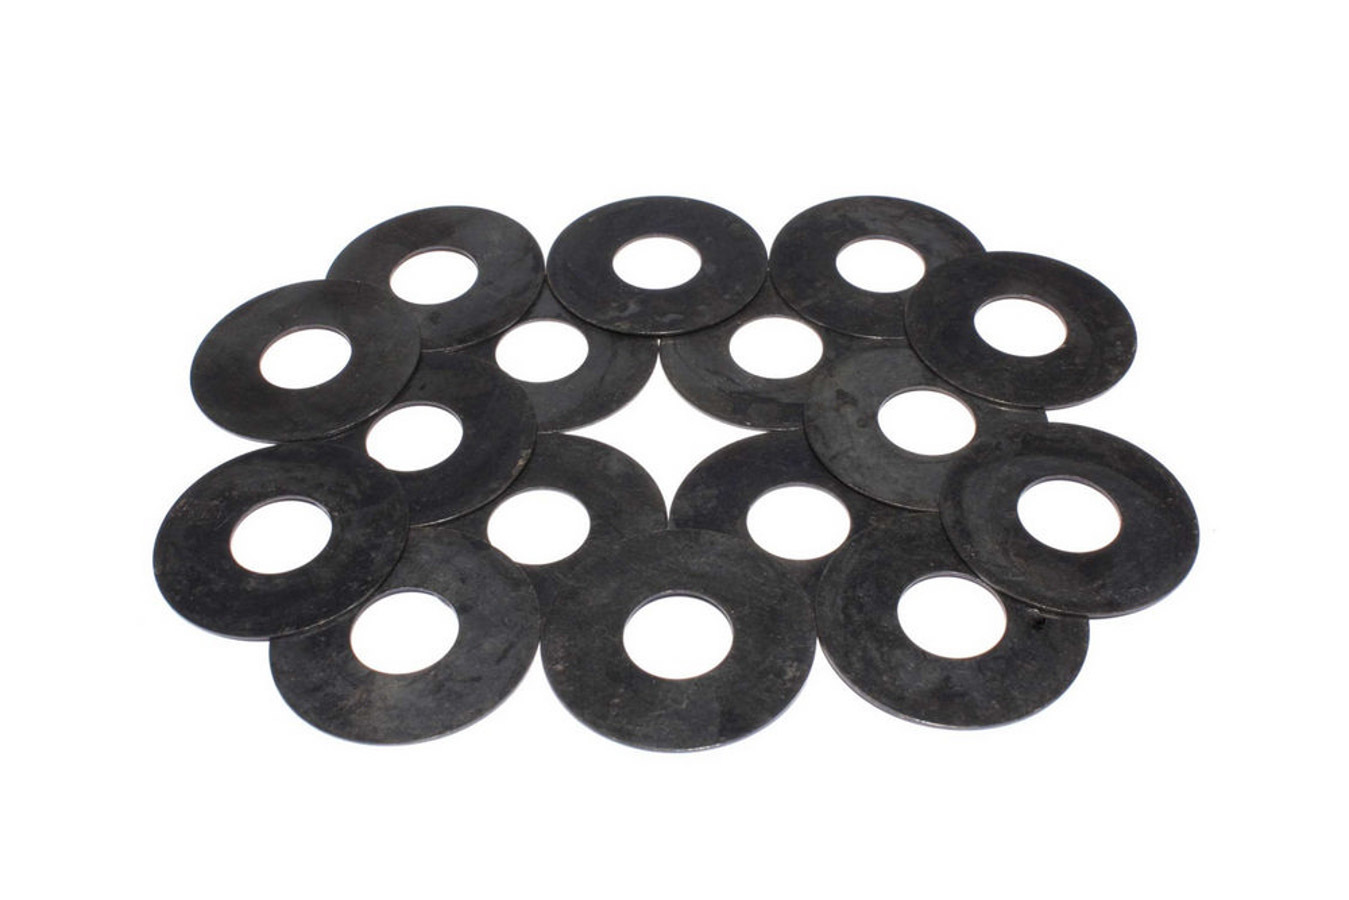 Comp Cams 4749-16 Valve Spring Shim, 0.060 in Thick, 1.437 in OD, Steel, Set of 16